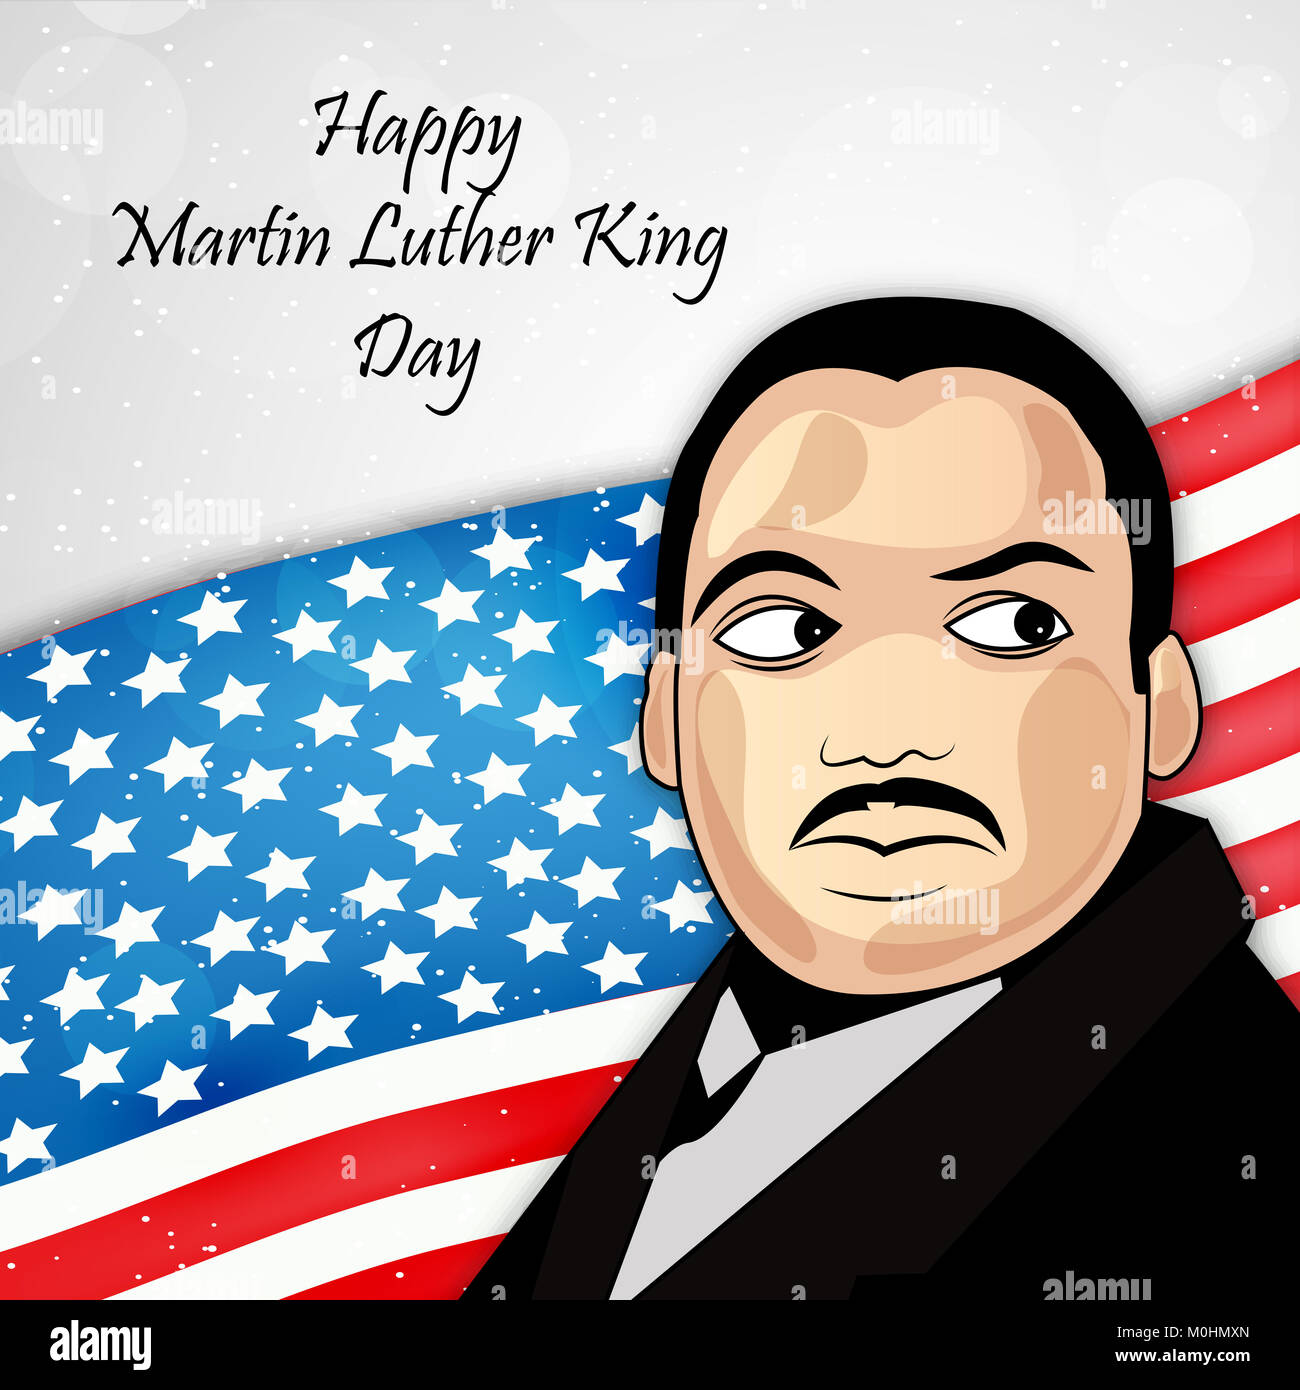 Illustration Of Martin Luther King Day Background Stock Photo